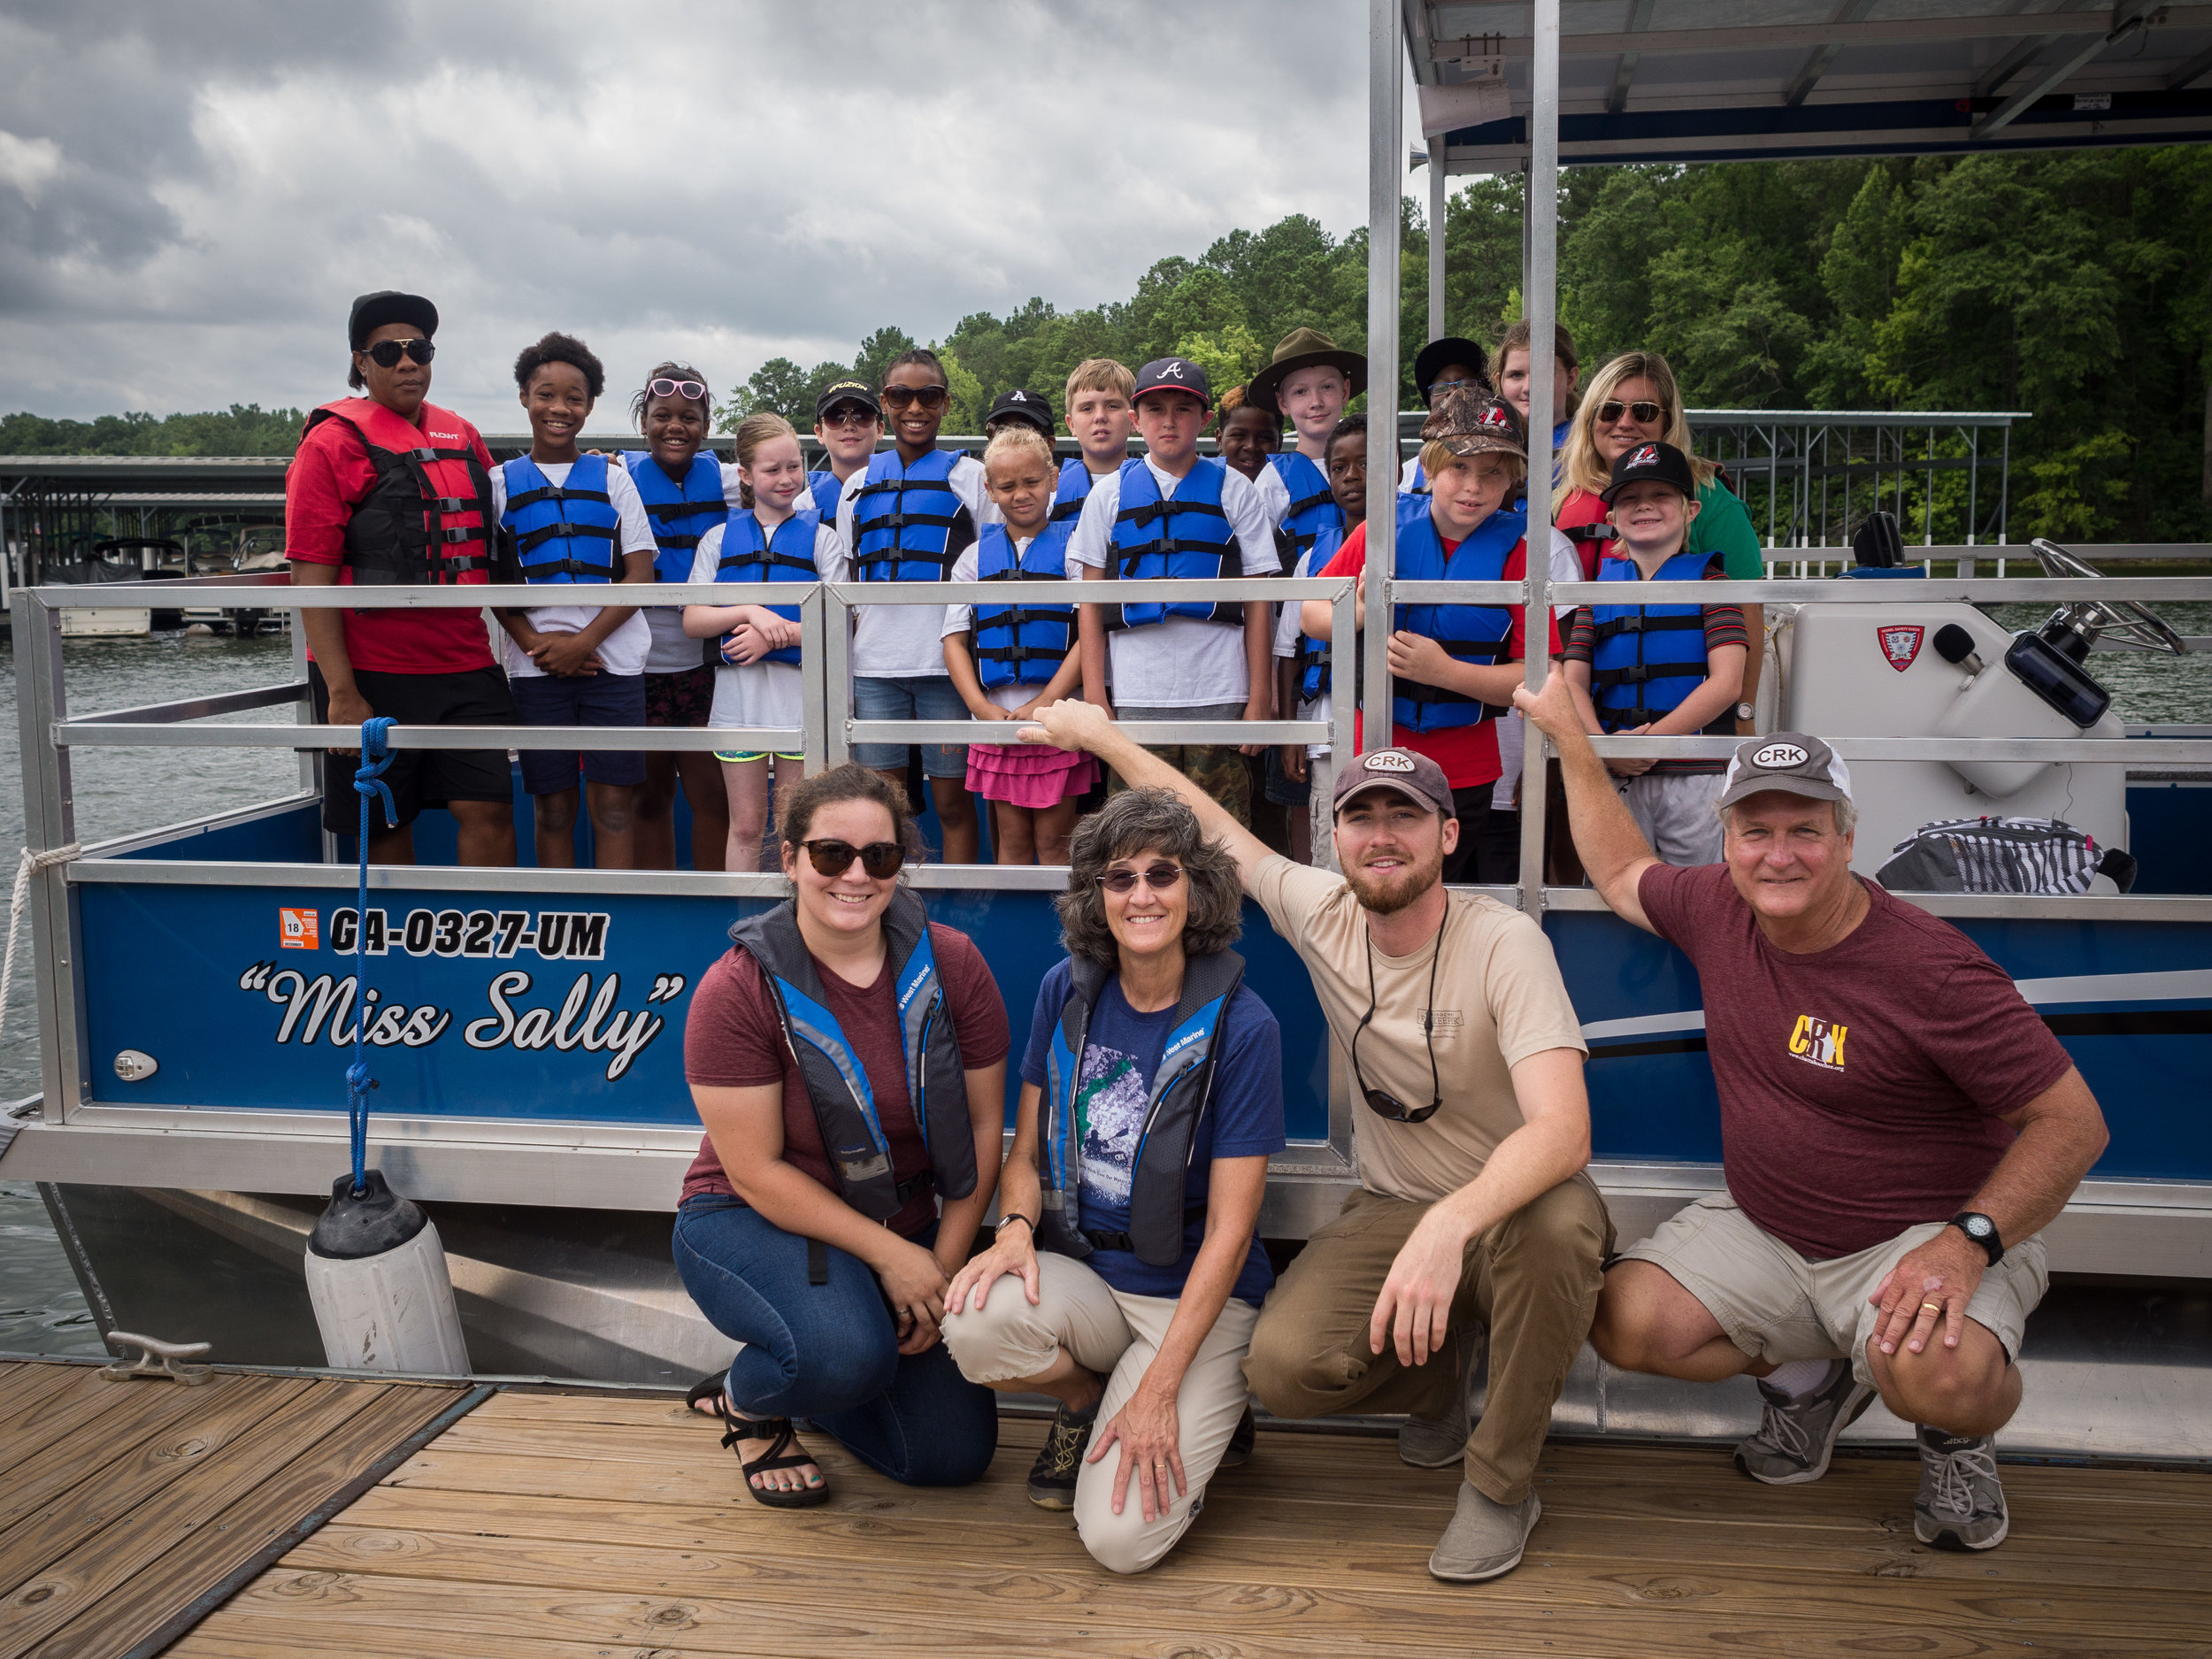 Headed out for a program on the Miss Sally. CRK staff pictured kneeling from left to right: Hannah Bradford, Laura Breyfogle, myself, and our boat captain Jim West. July 28, 2016.